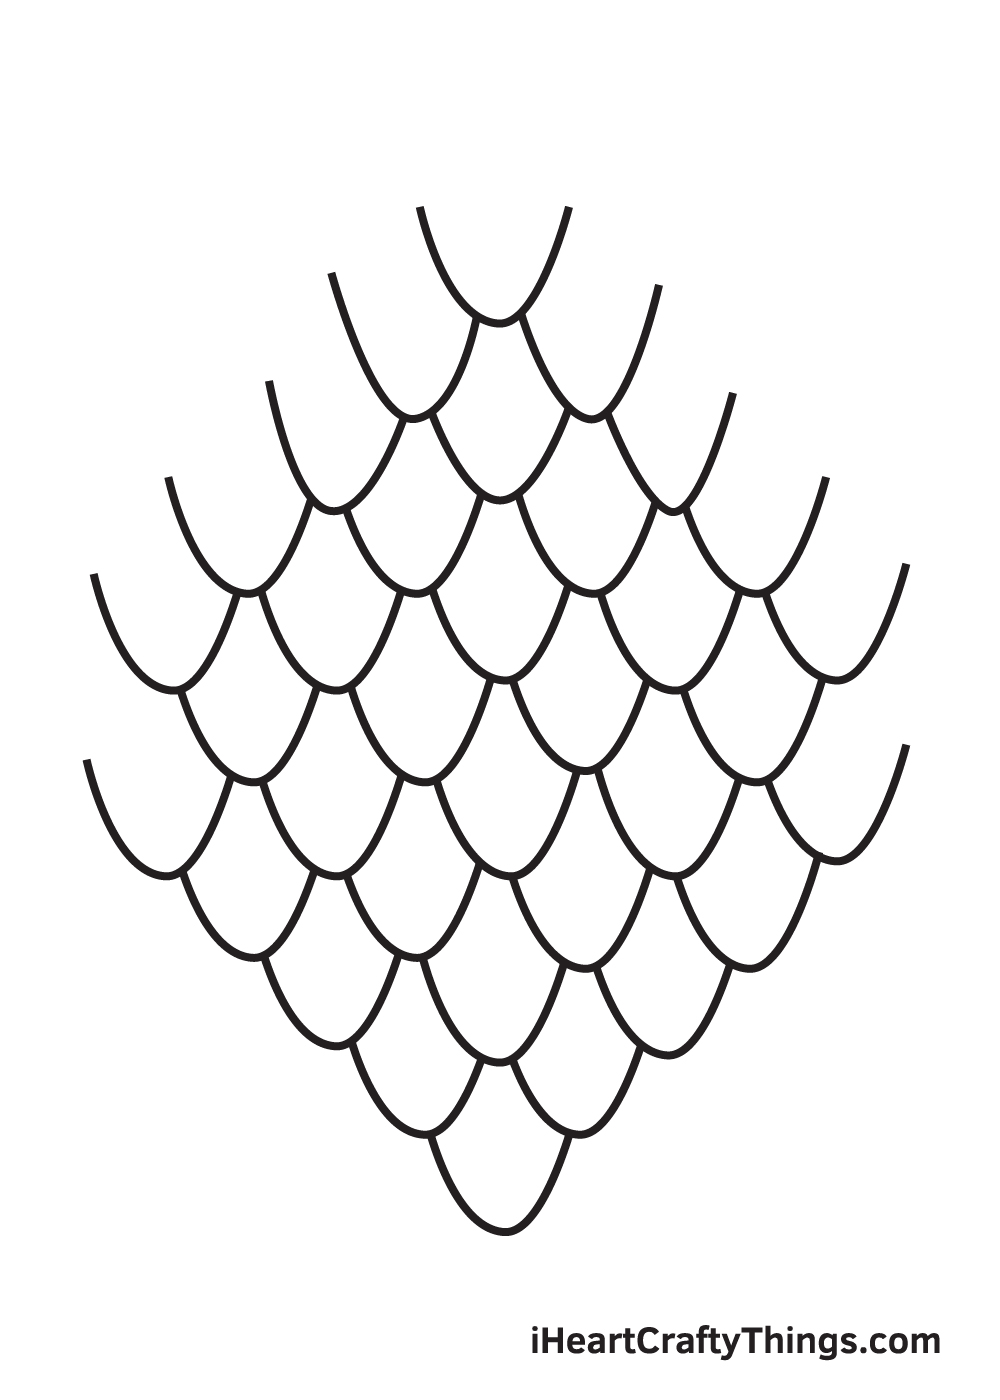 scales drawing step 9